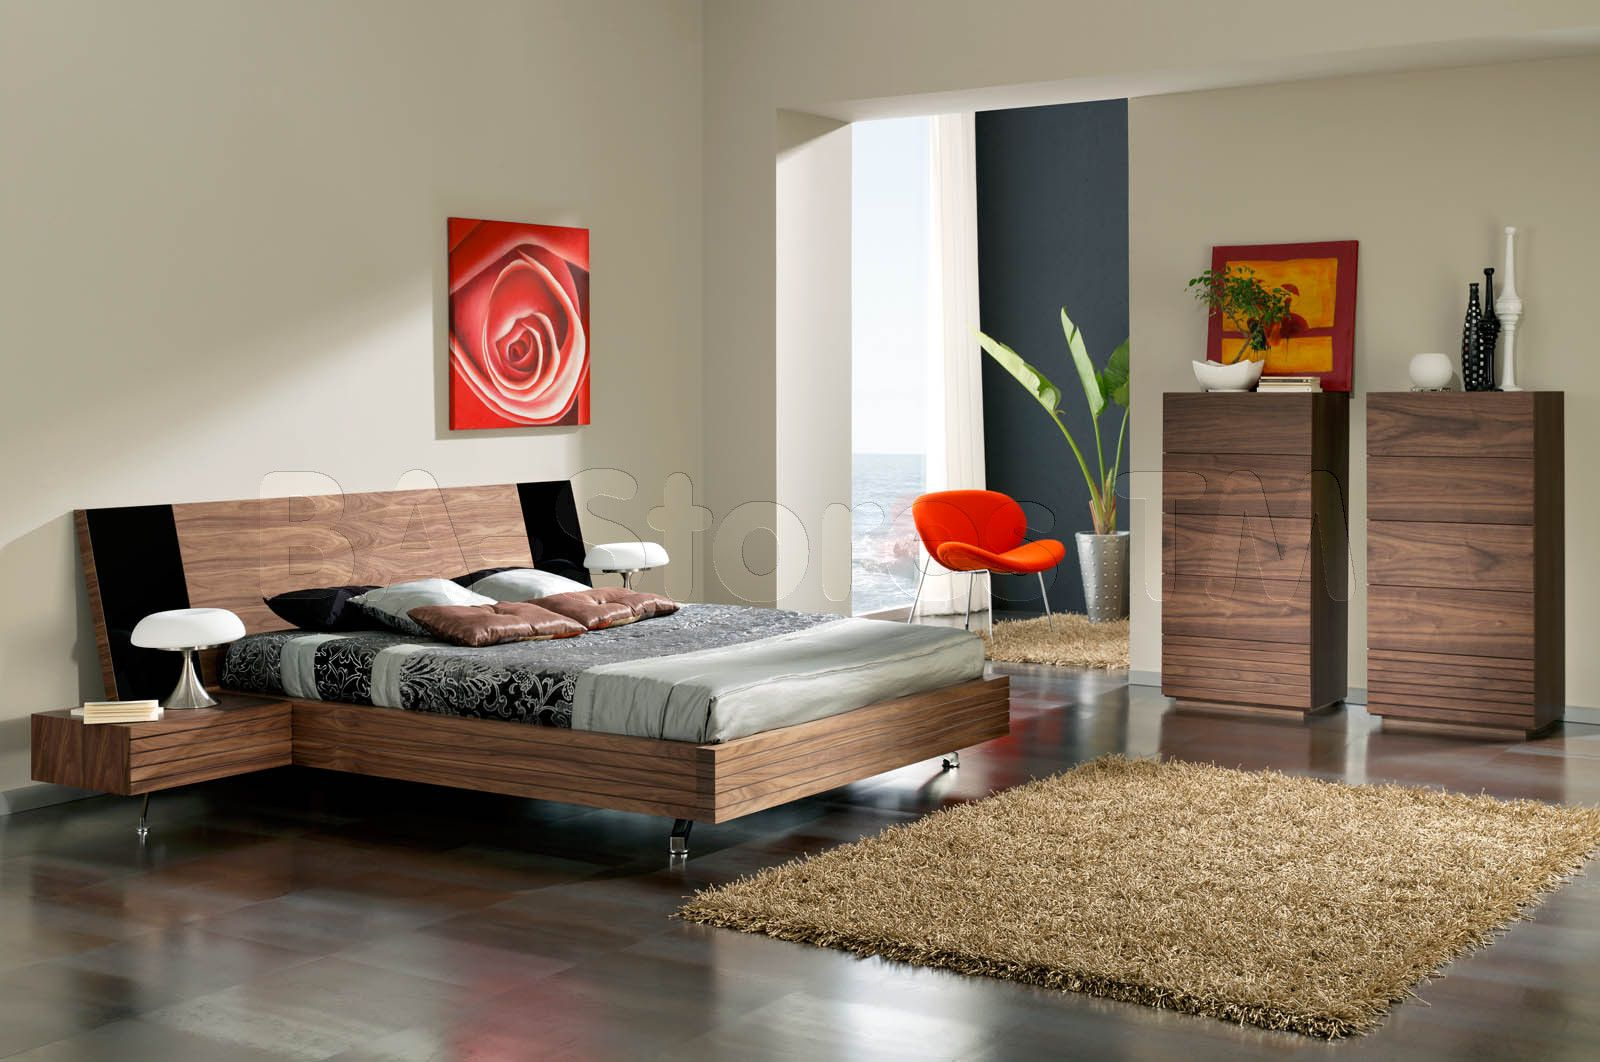 bedroom furniture ikea - Design Bedroom Ikea